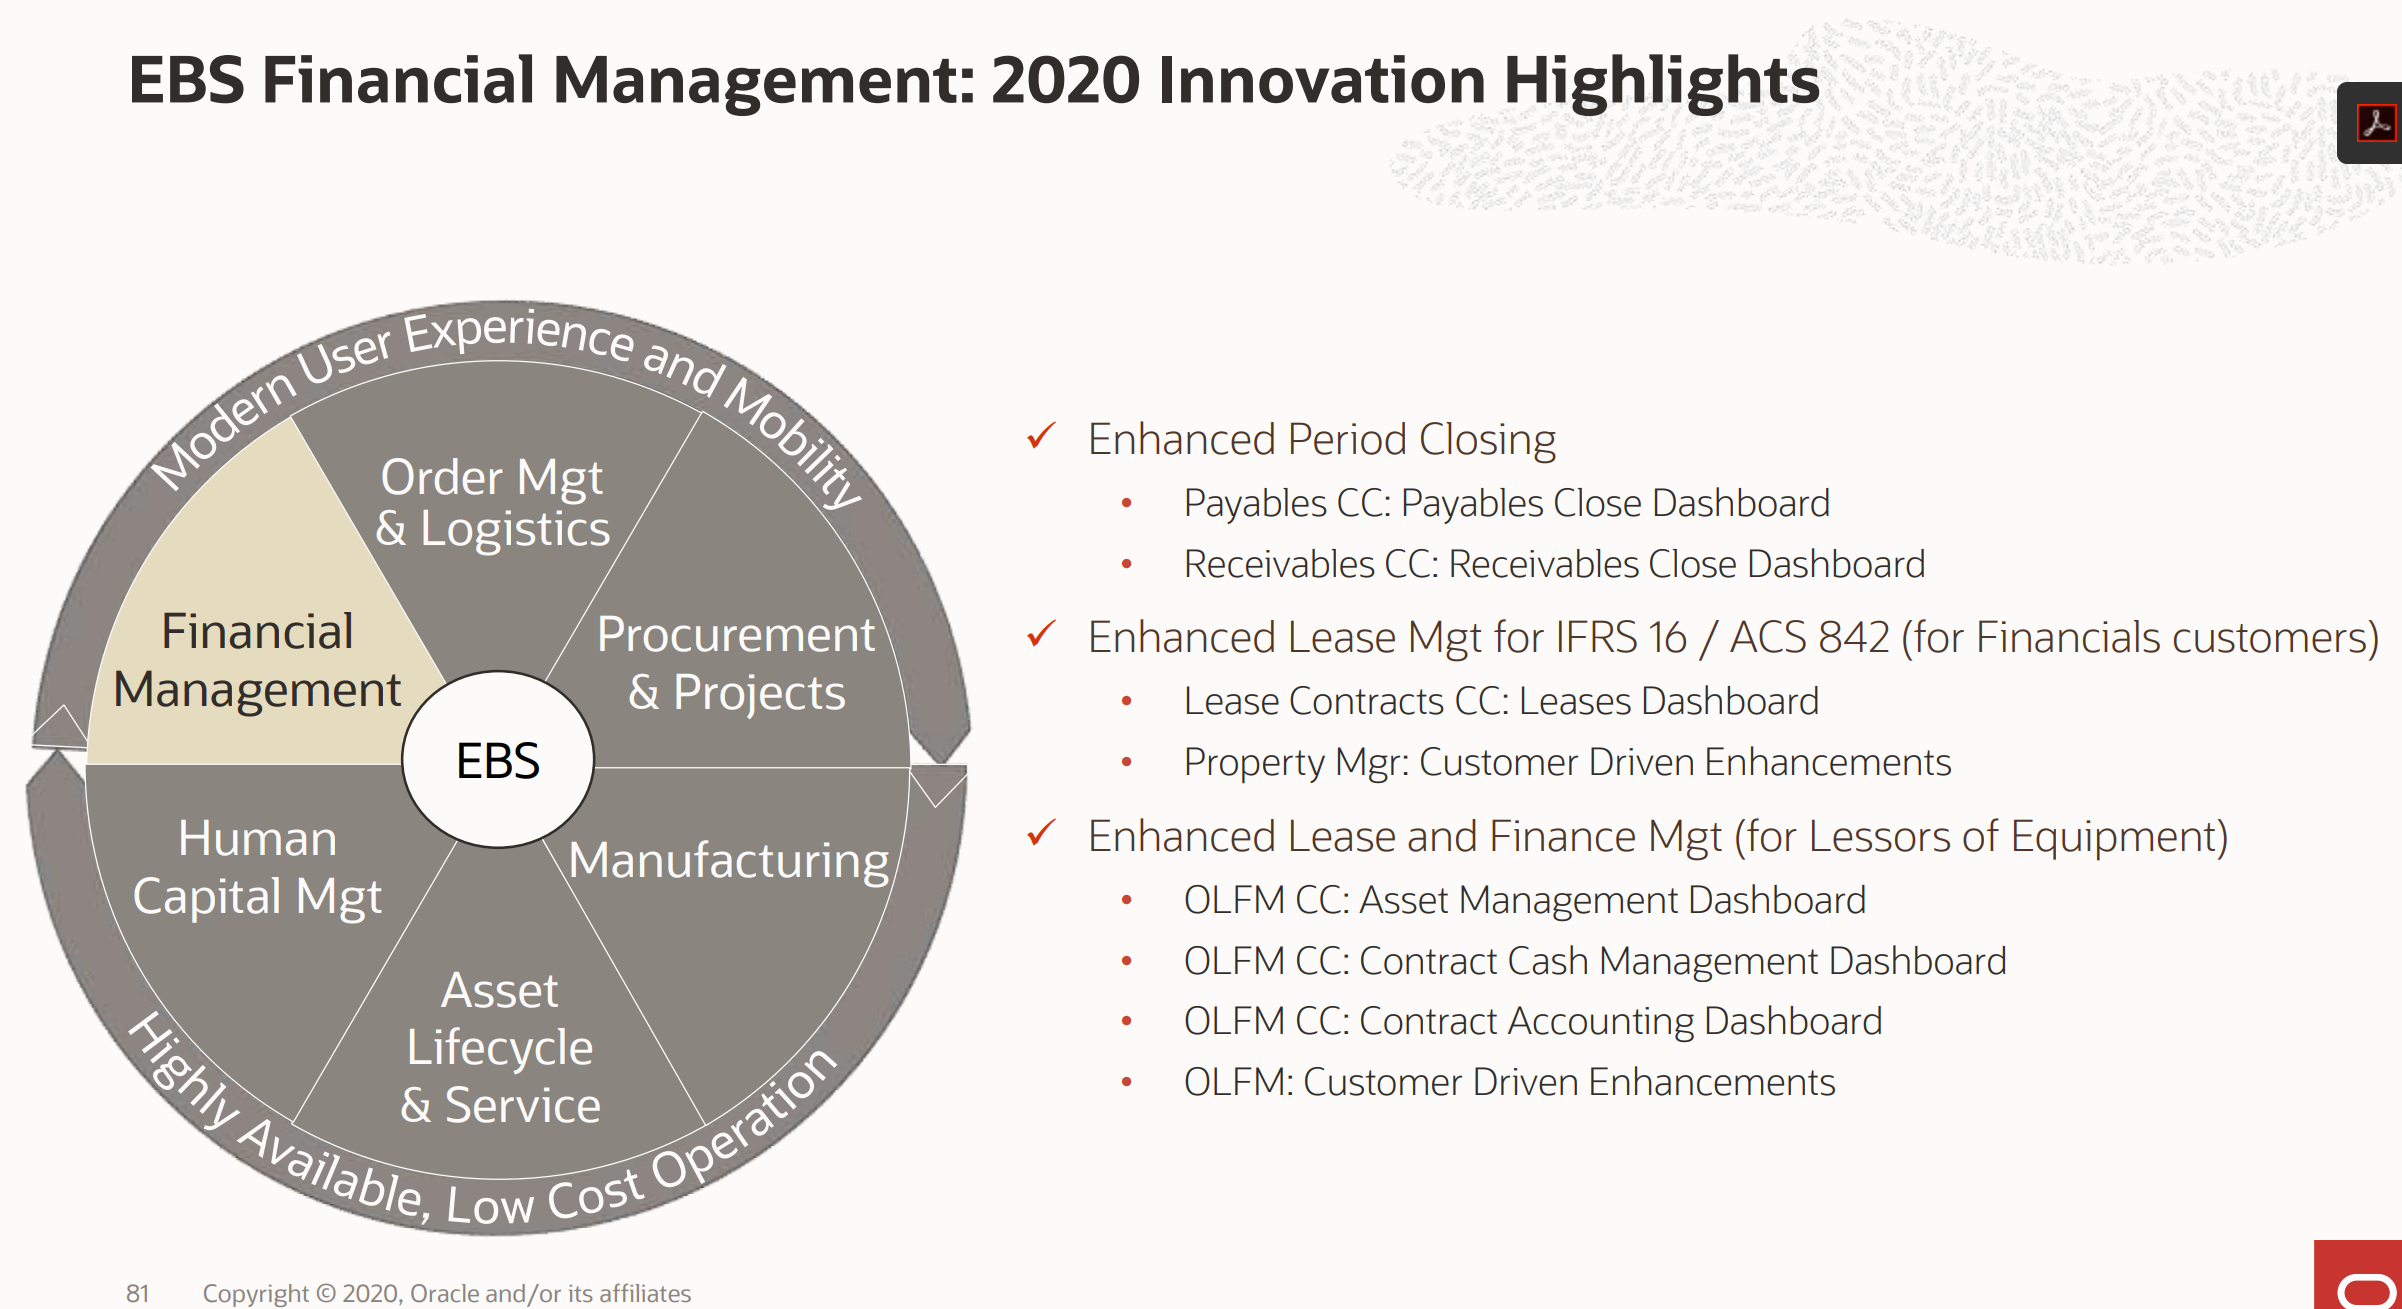 EBS Financial Management 2020 Innovation Highlights